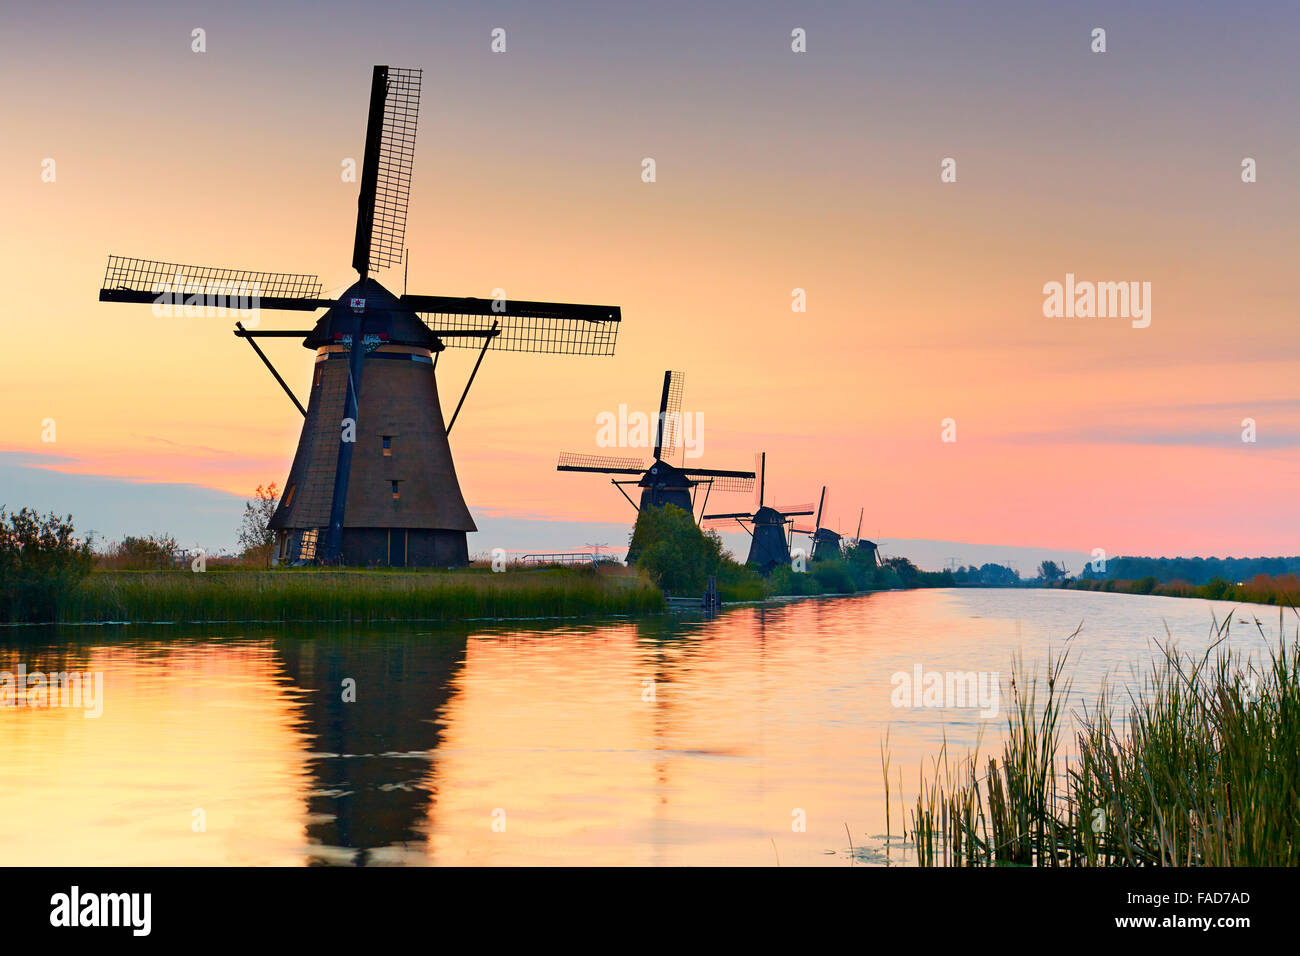 Kinderdijk windmills at sunrise - Holland Netherlands - Stock Image